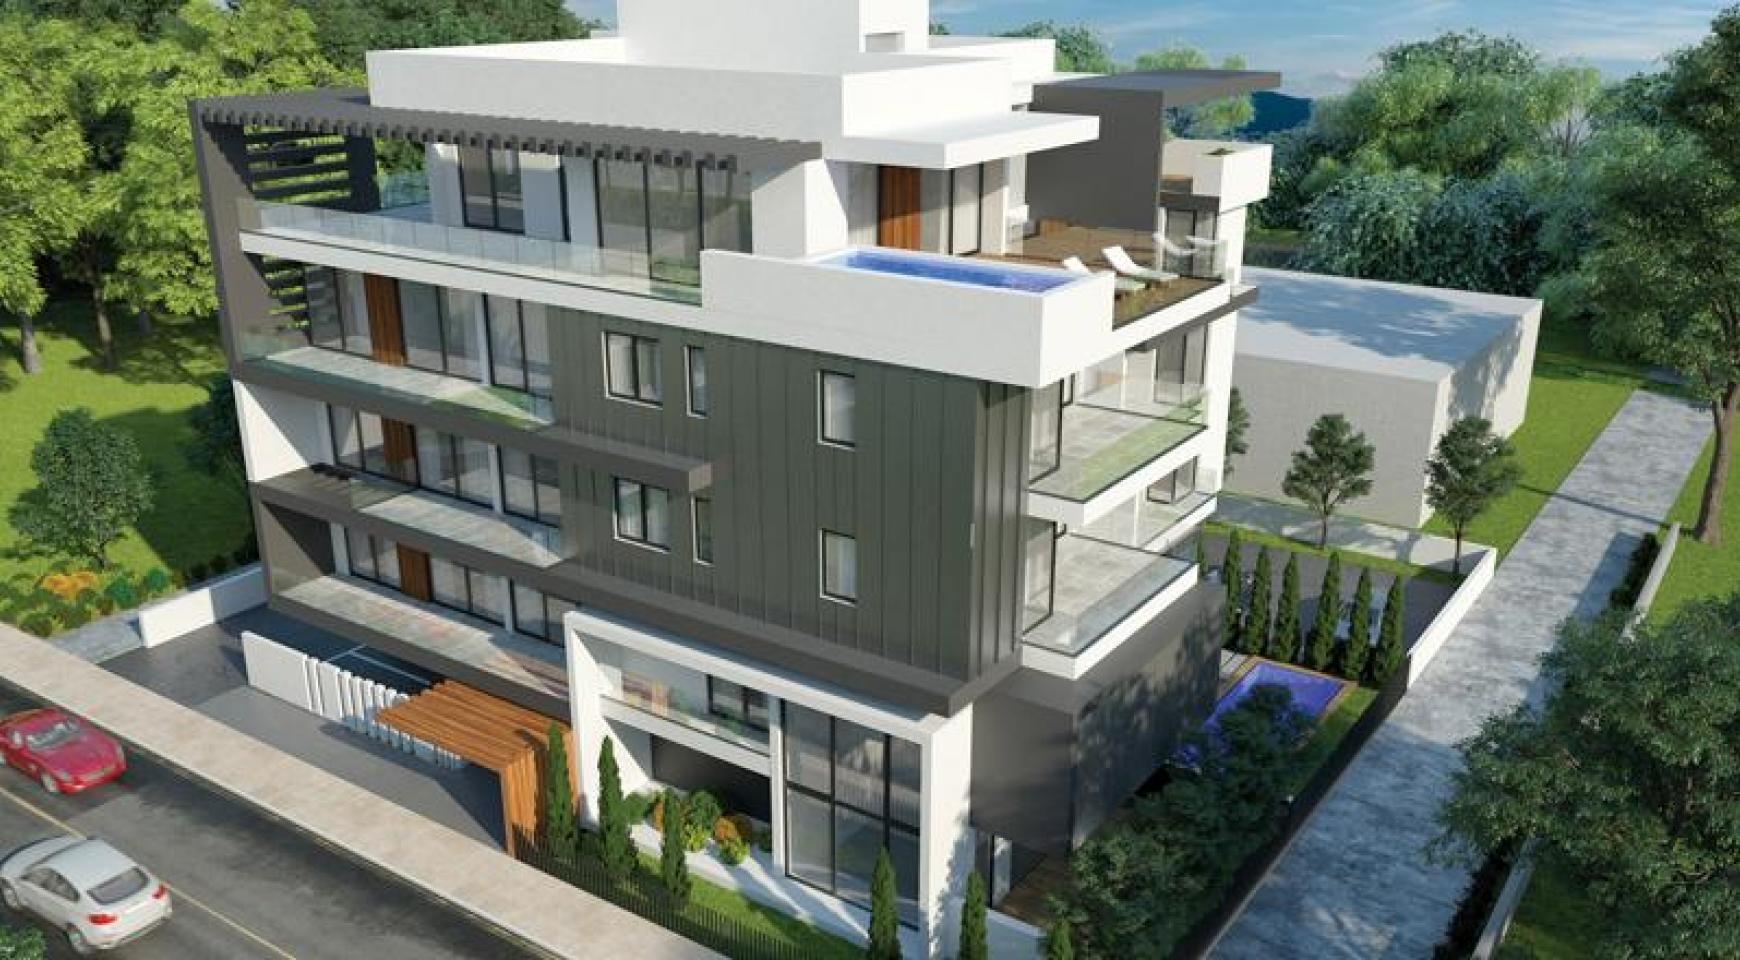 New 2 Bedroom Apartment with Roof Garden in a Contemporary Complex  - 2